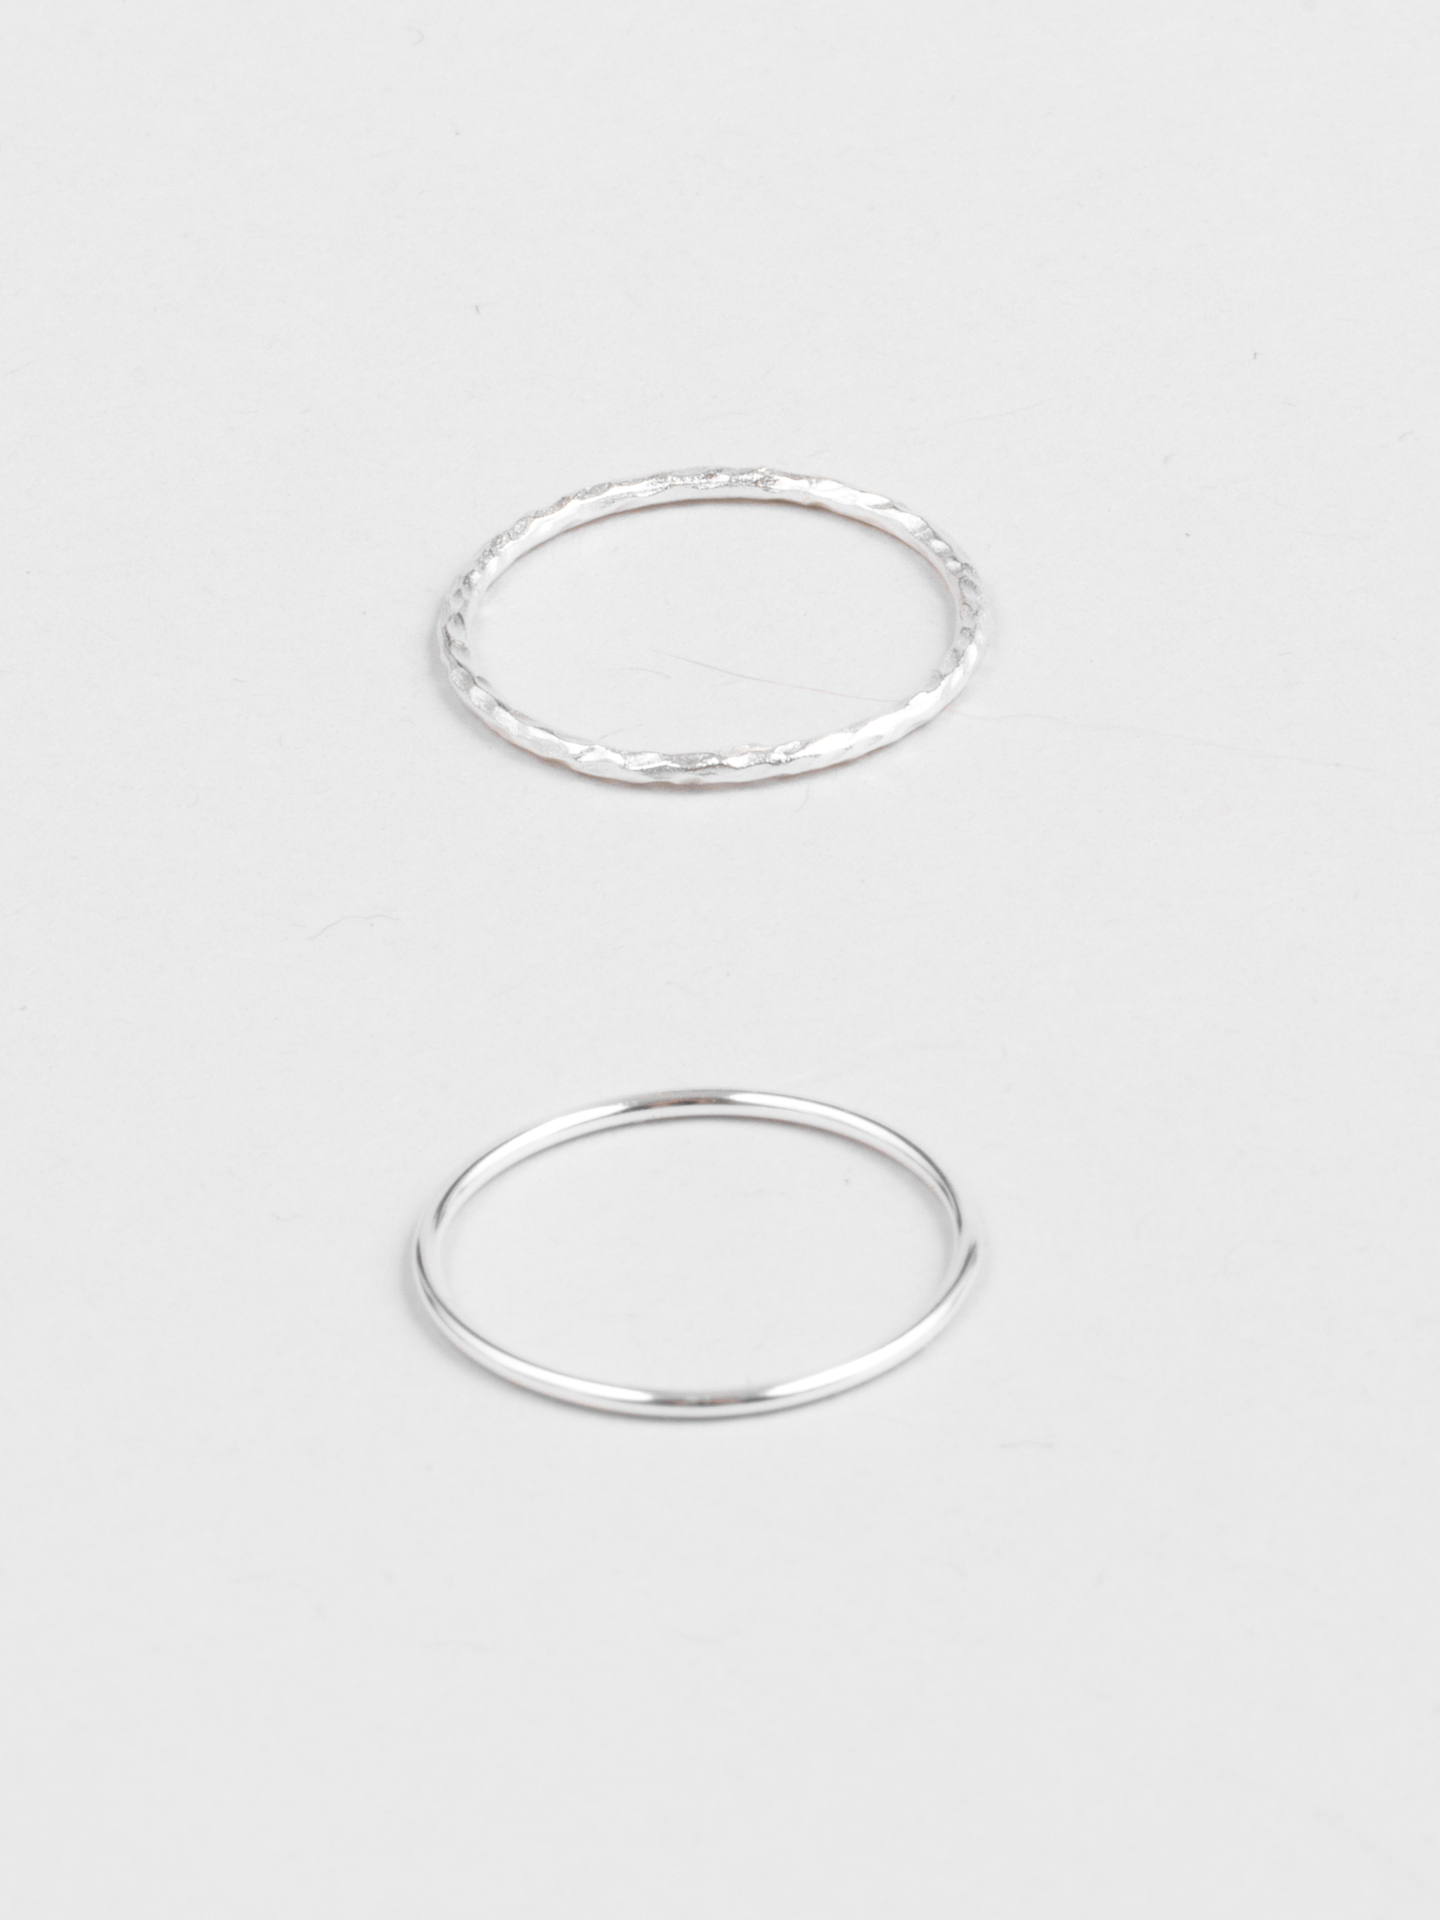 For Mankind Stacking Rings